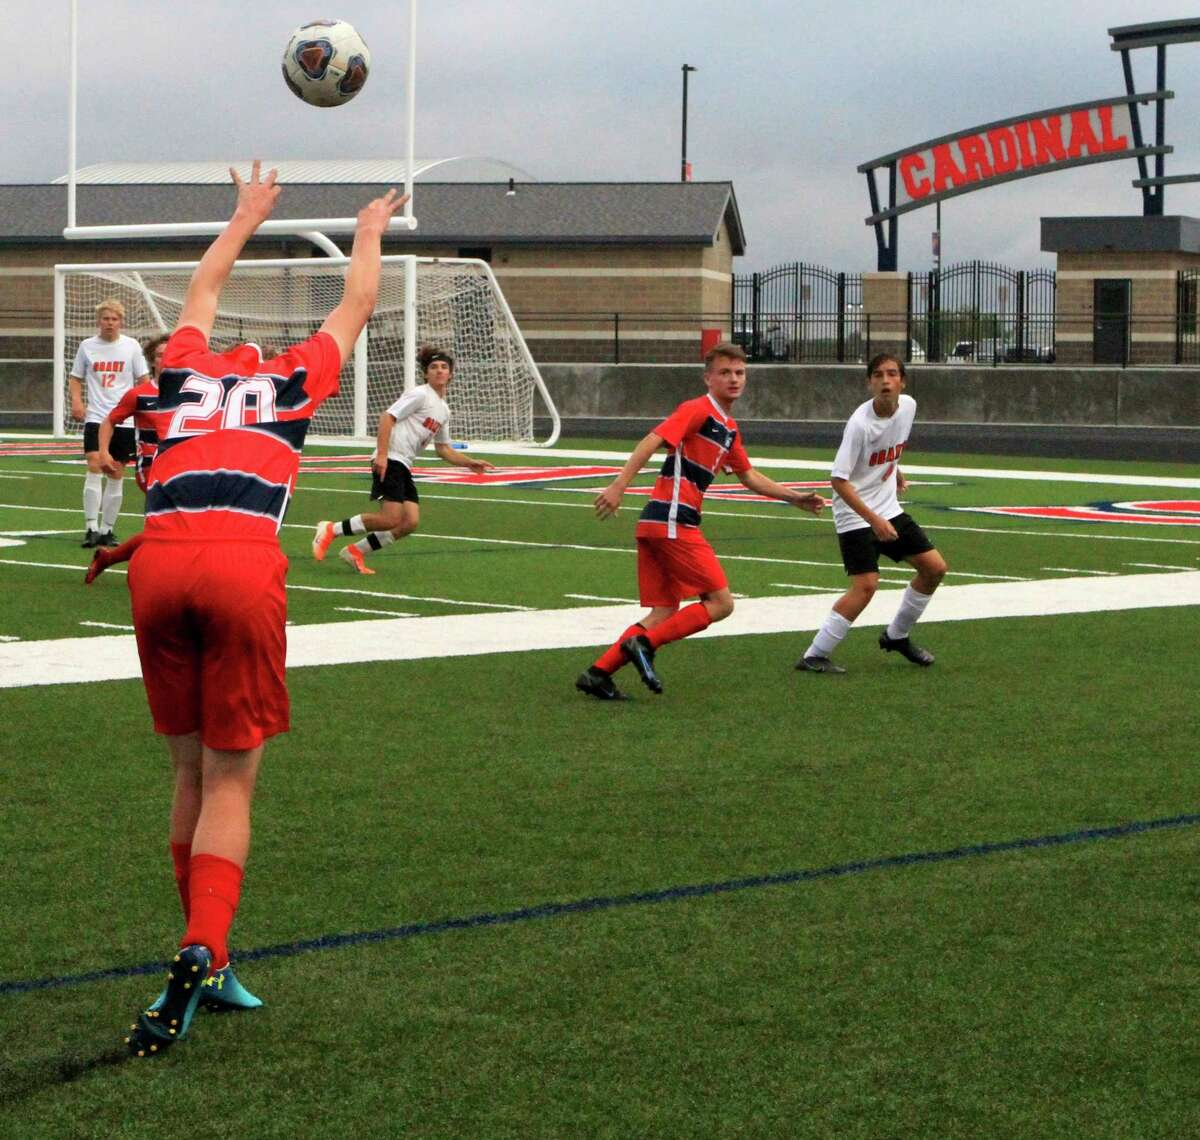 Big Rapids junior defender Carter Leyder throws the ball in from the touchline during BR's 3-0 win over Grant on Monday night at Cardinal Stadium. (Pioneer photo/Joe Judd)